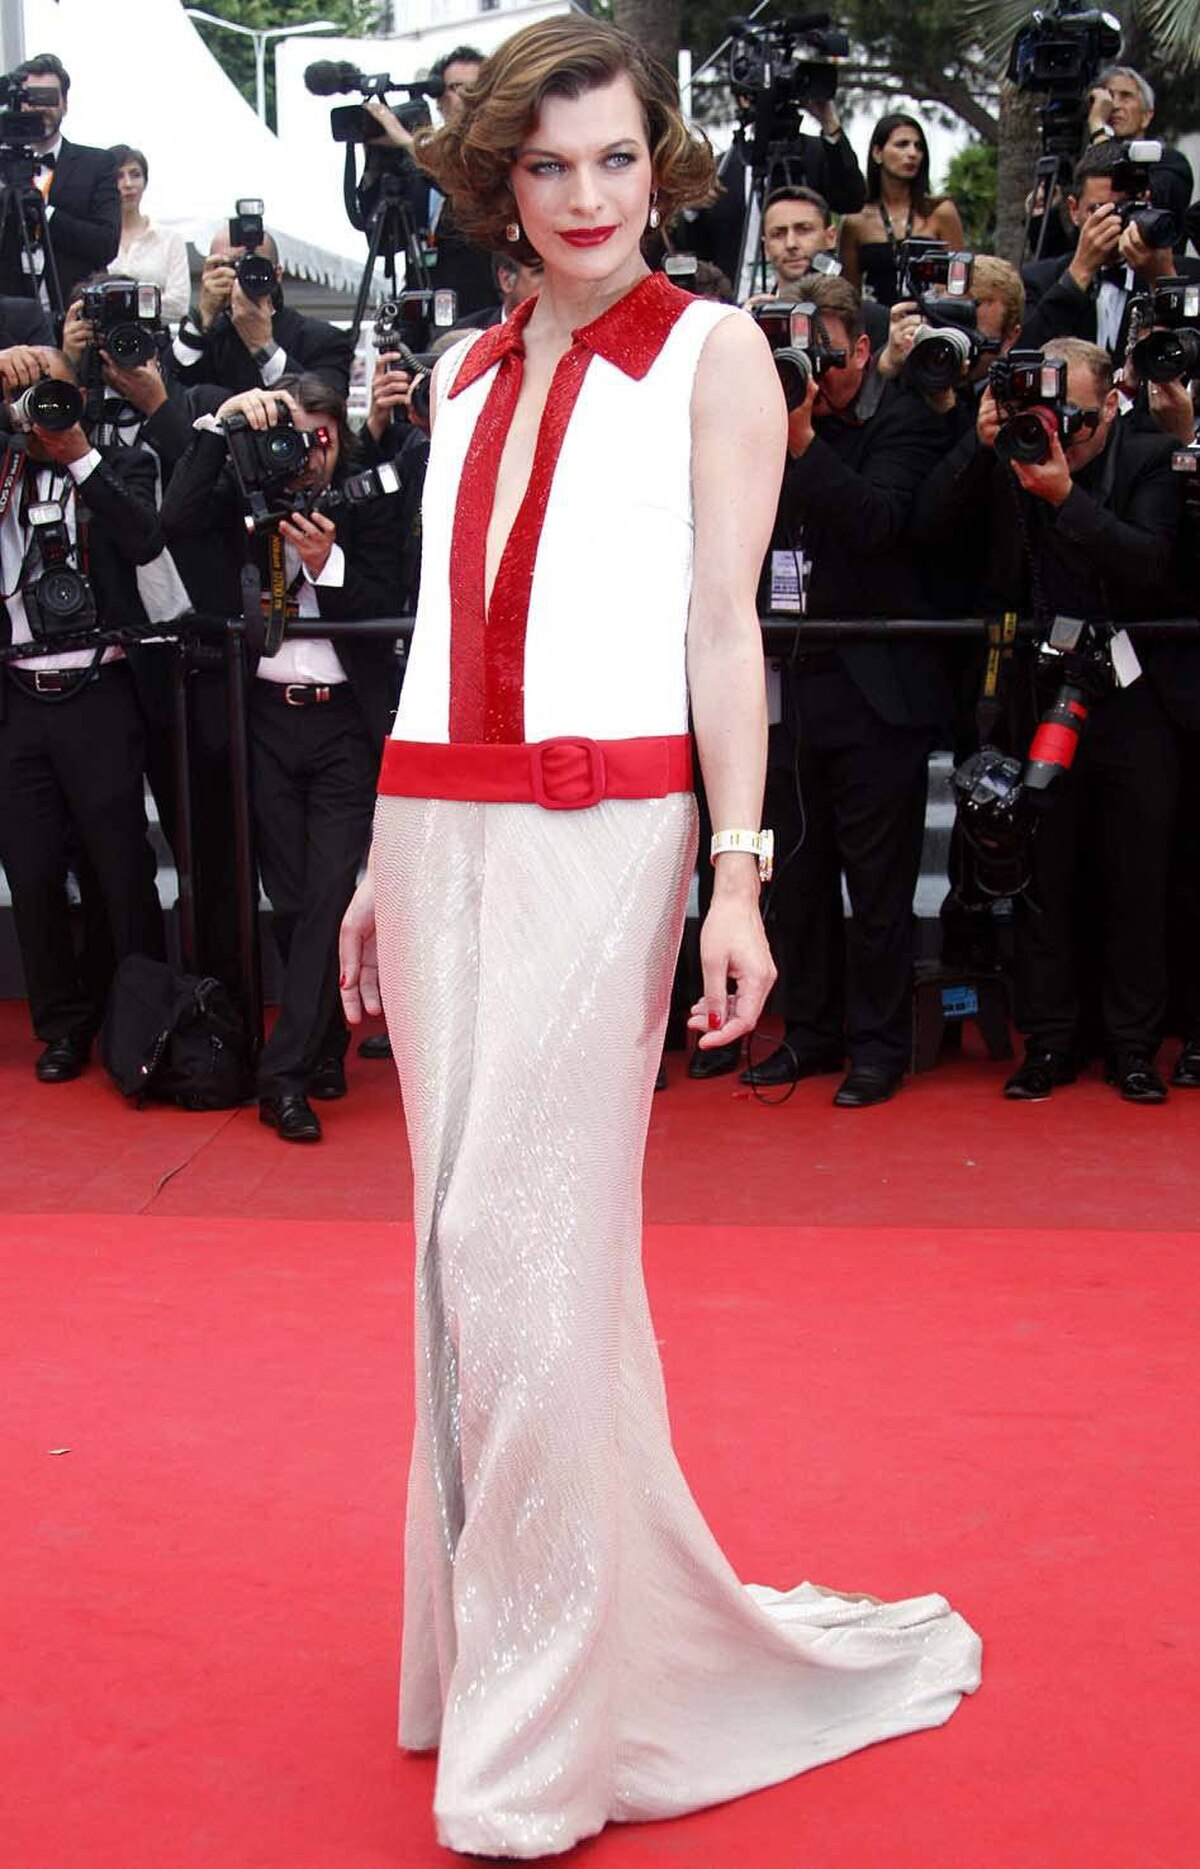 """Actress Milla Jovovich on the red carpet for the screening of the film """"La Conquete"""" at the Cannes Film Festival on Wednesday."""